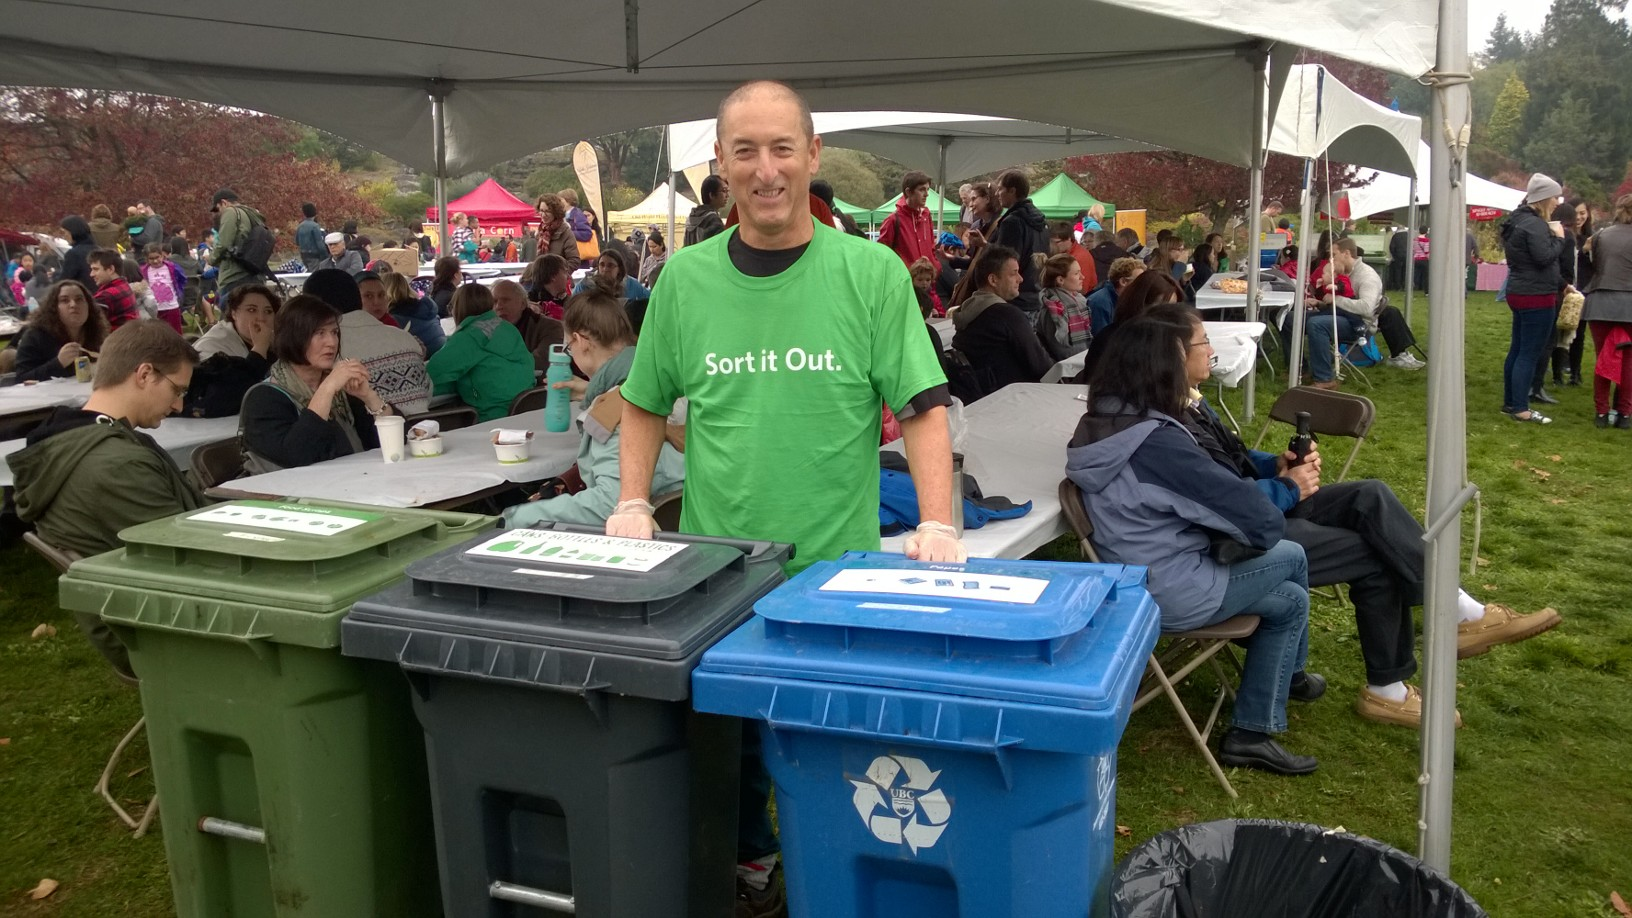 Zero Waste volunteer Eyal at the waste sorting station